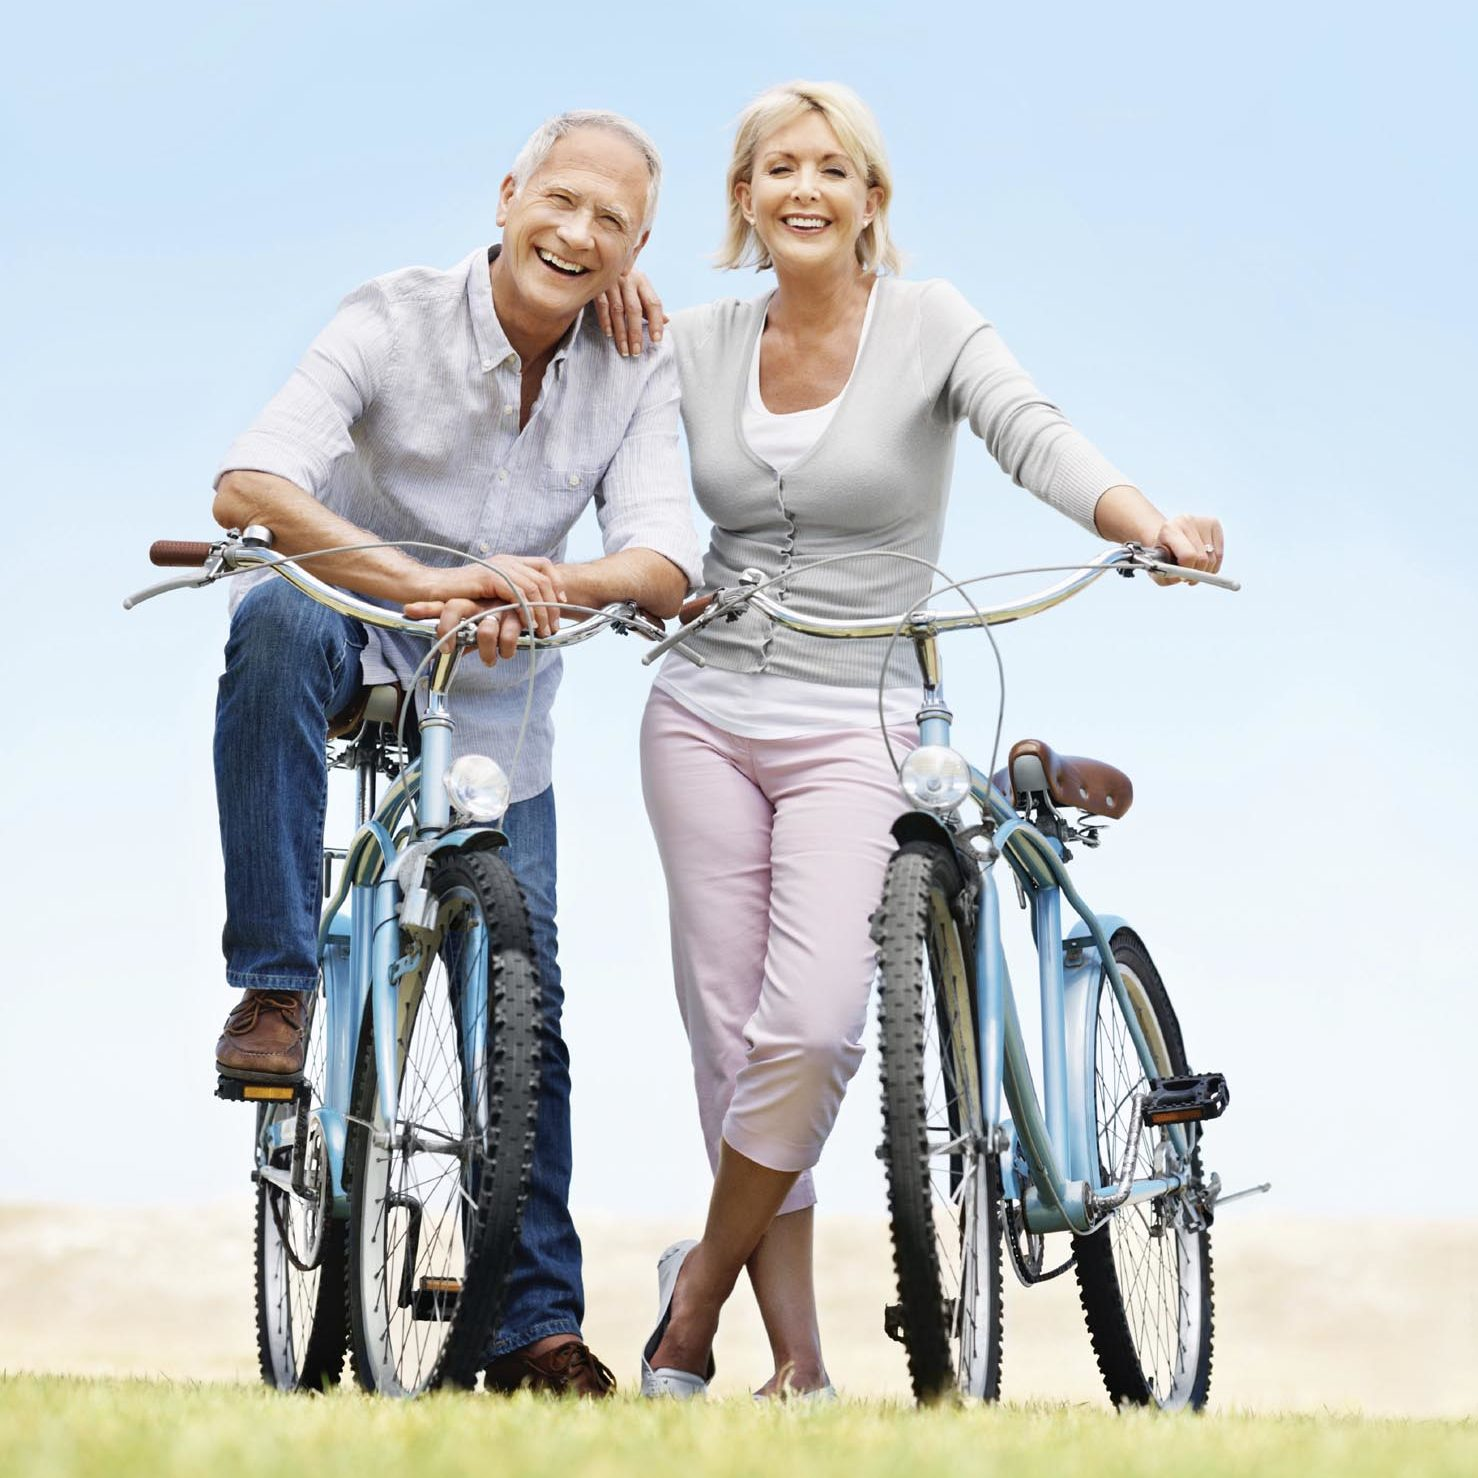 Full-length portrait of a mature couple with their bikes